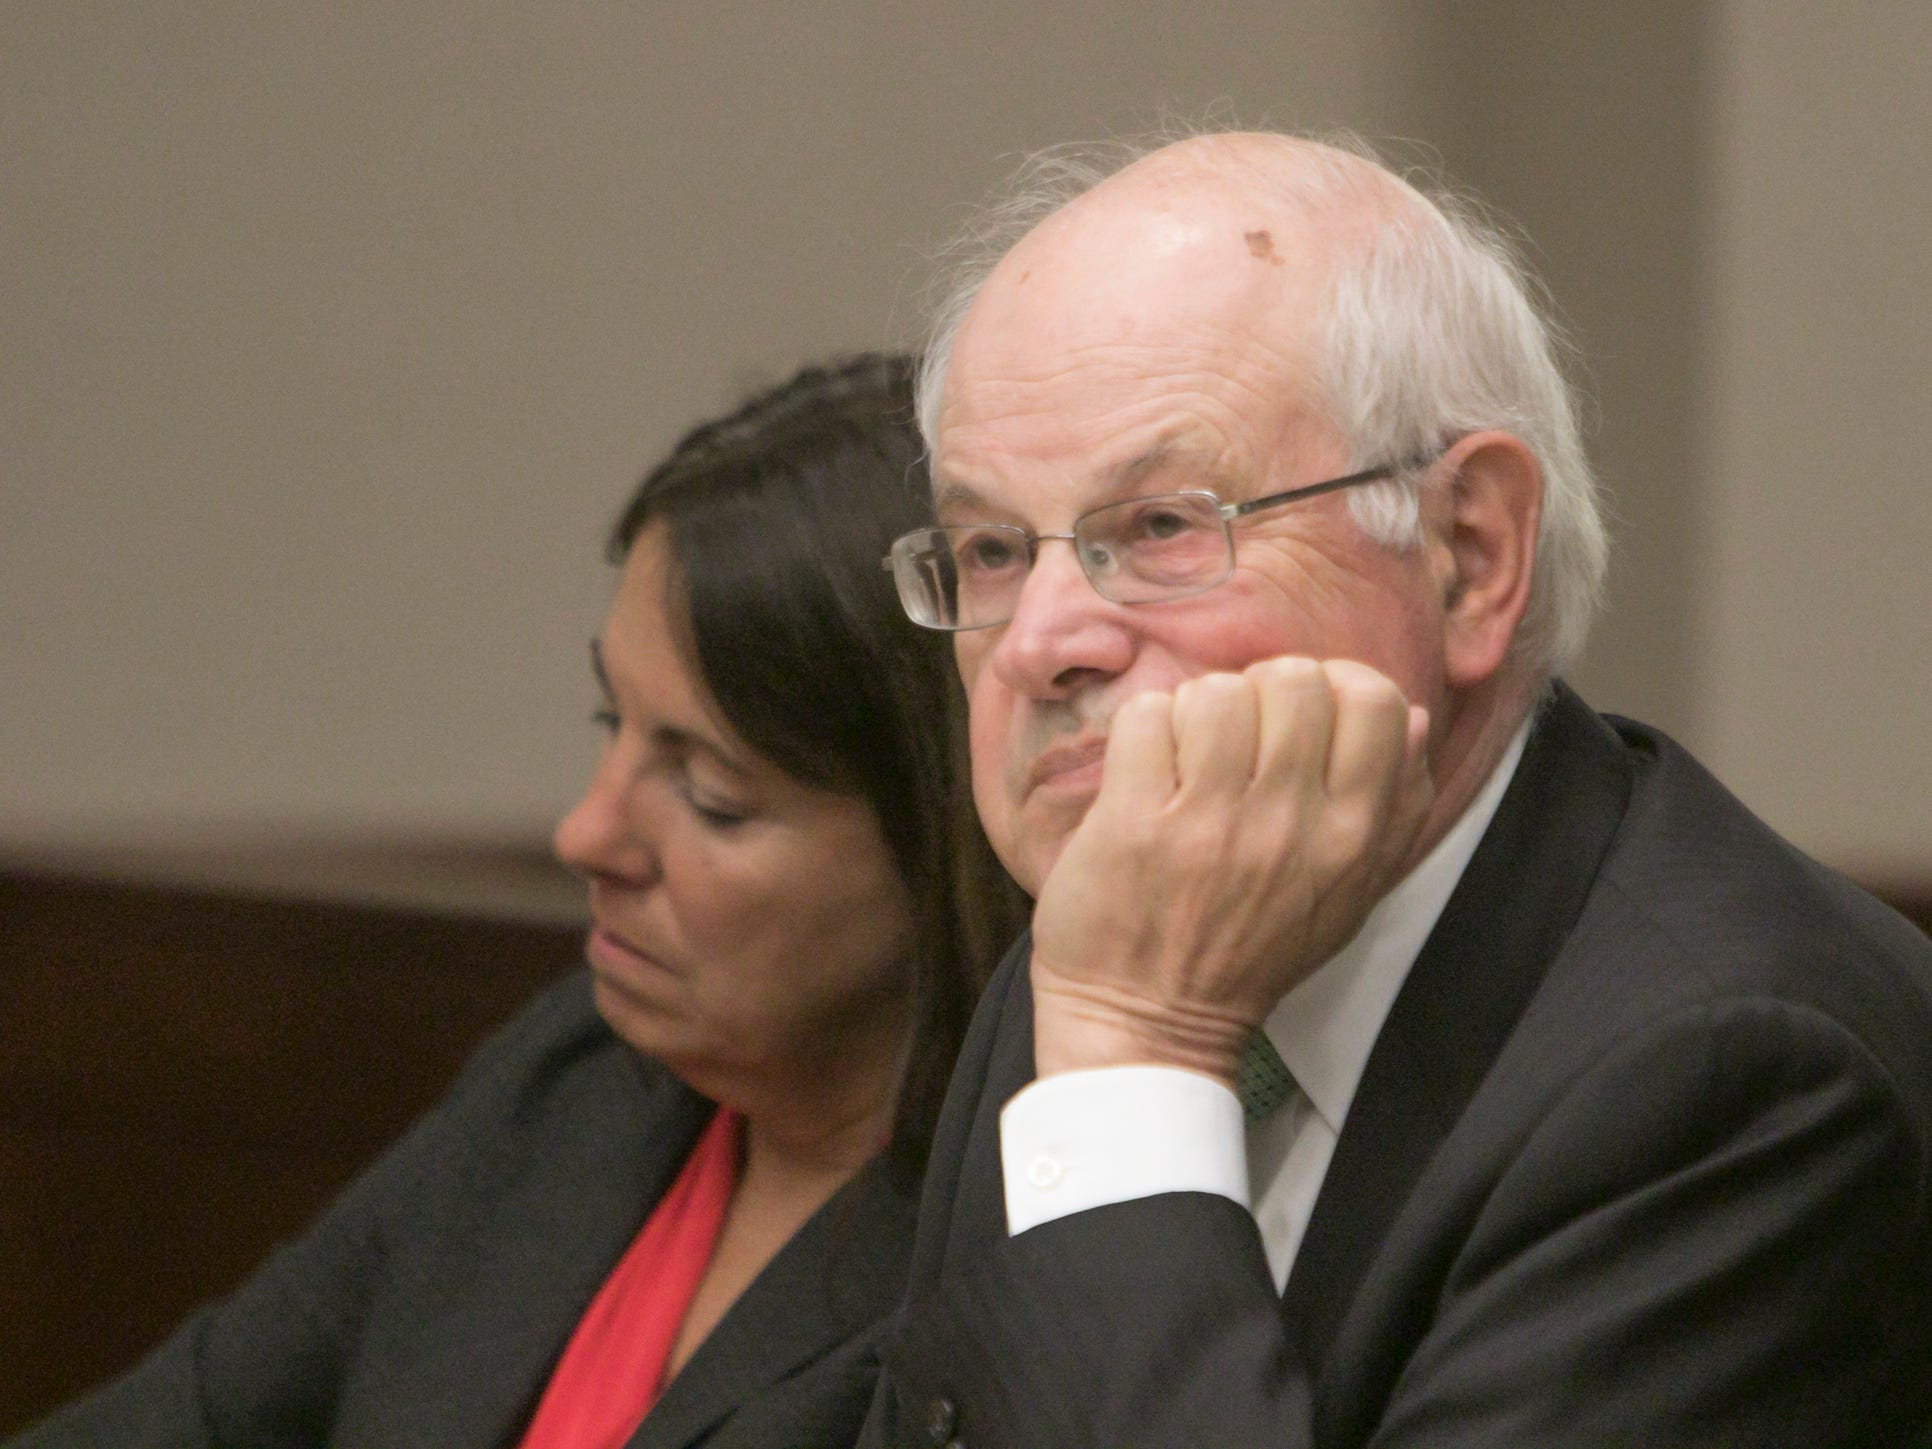 Judge Theresa Brennan and her attorney Dennis Kolenda listen to testimony from civil clerk Lisa Bove in the Judicial Tenure Commission hearing Thursday, Oct. 4, 2018.